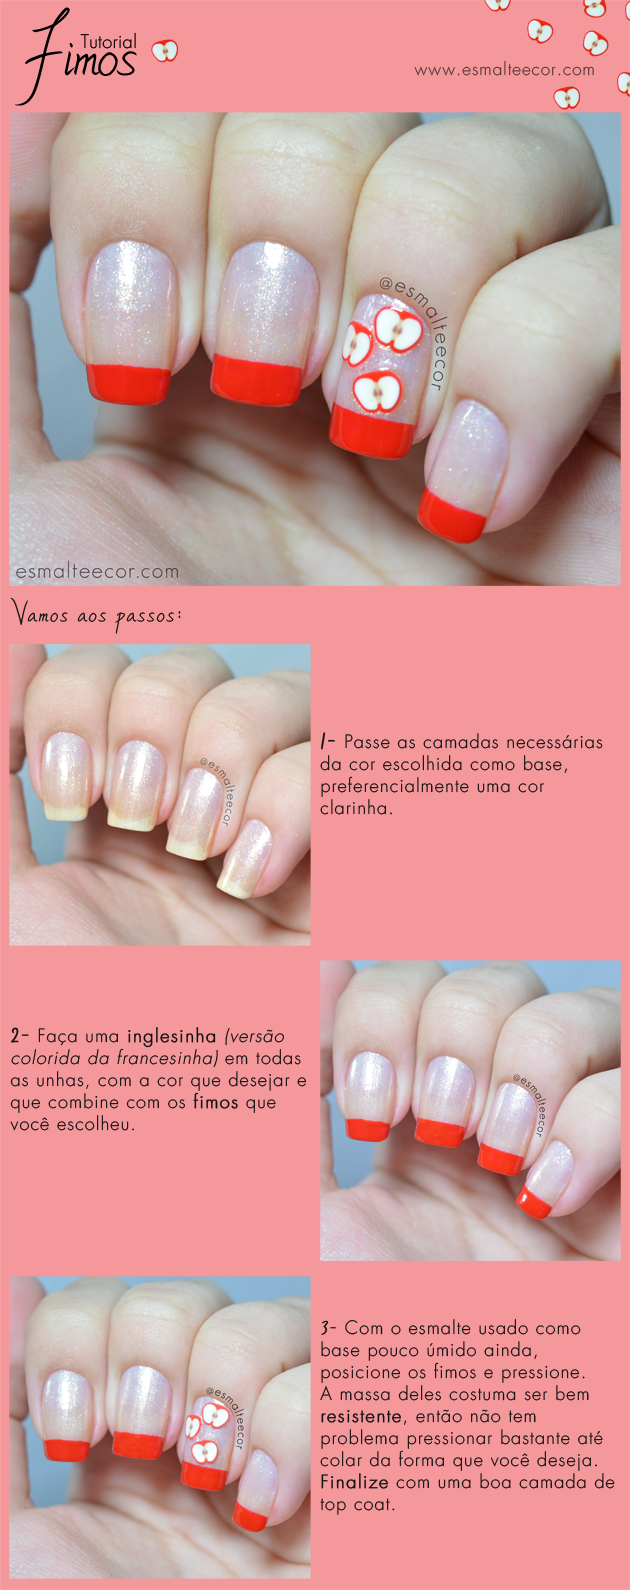 Tutorial Nail Art Fimos